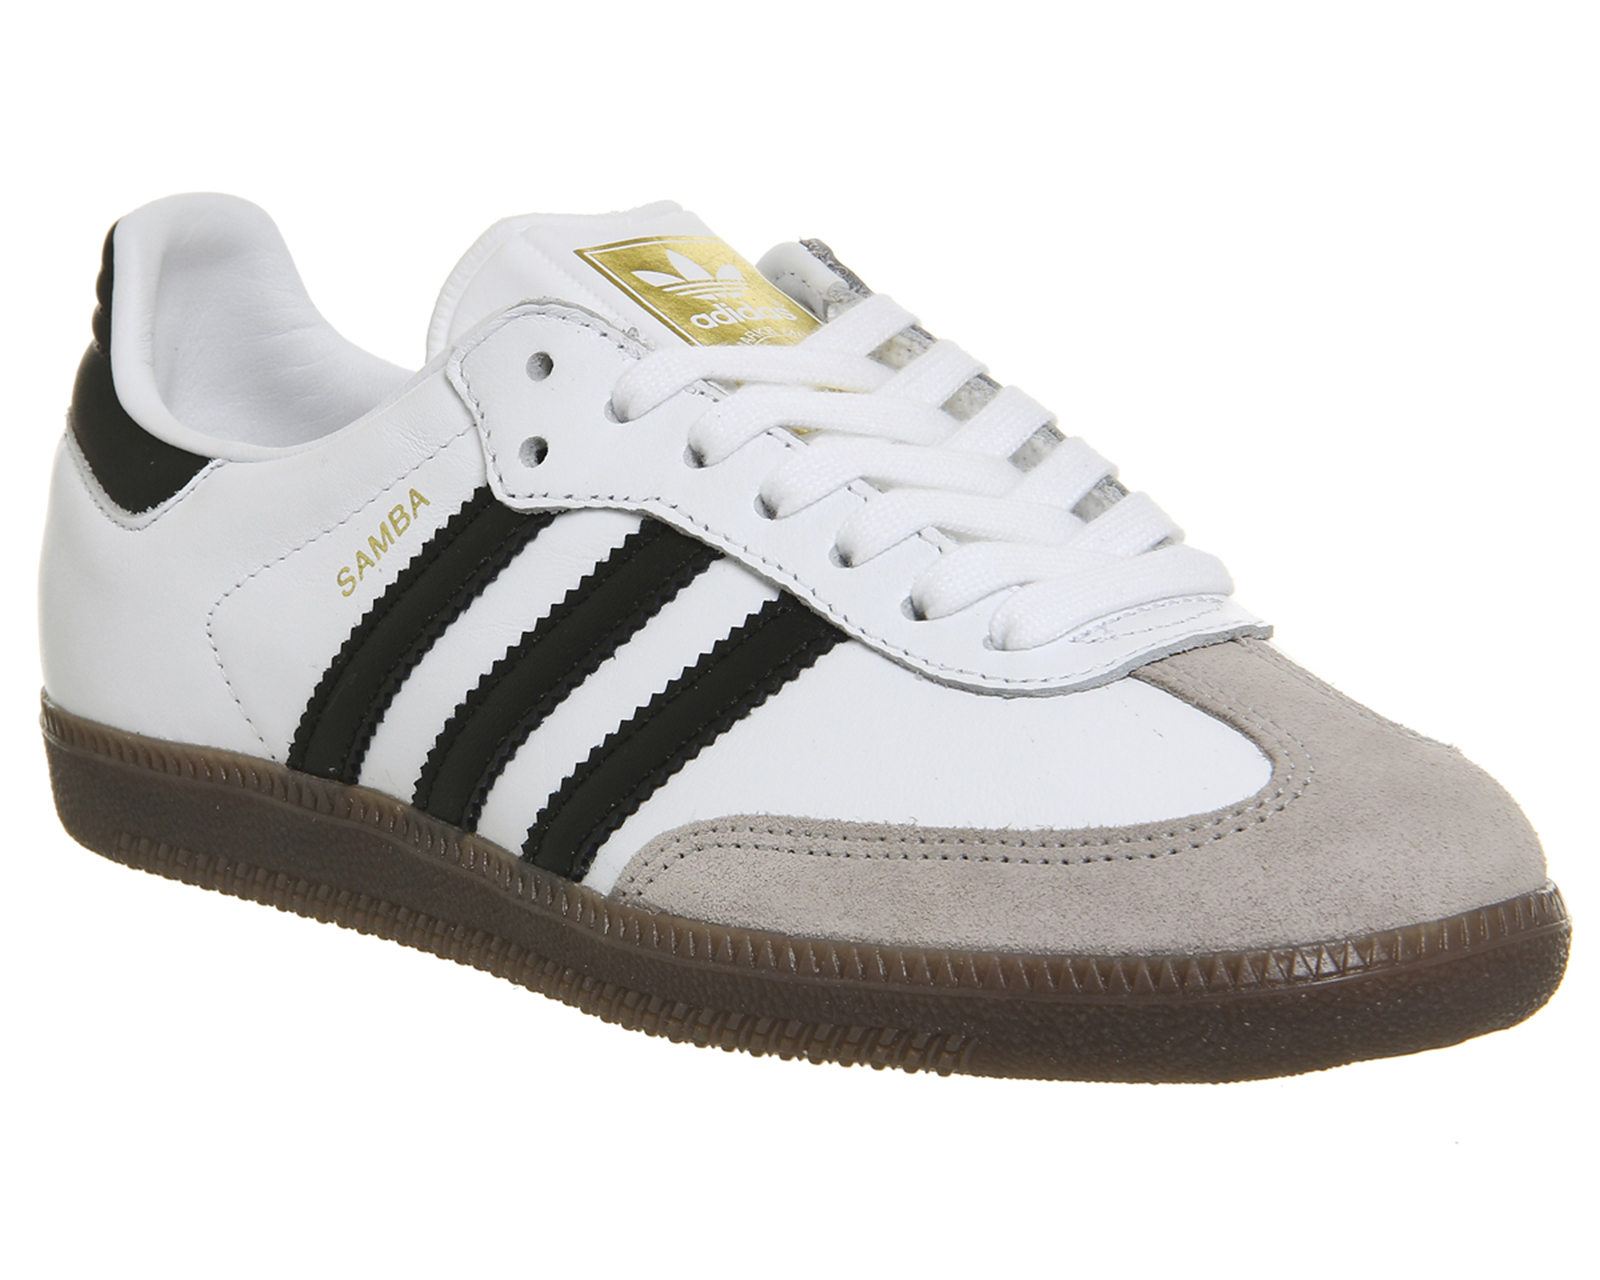 d999a05d3 Sentinel Adidas Samba WHITE BLACK LEATHER OG Trainers Shoes